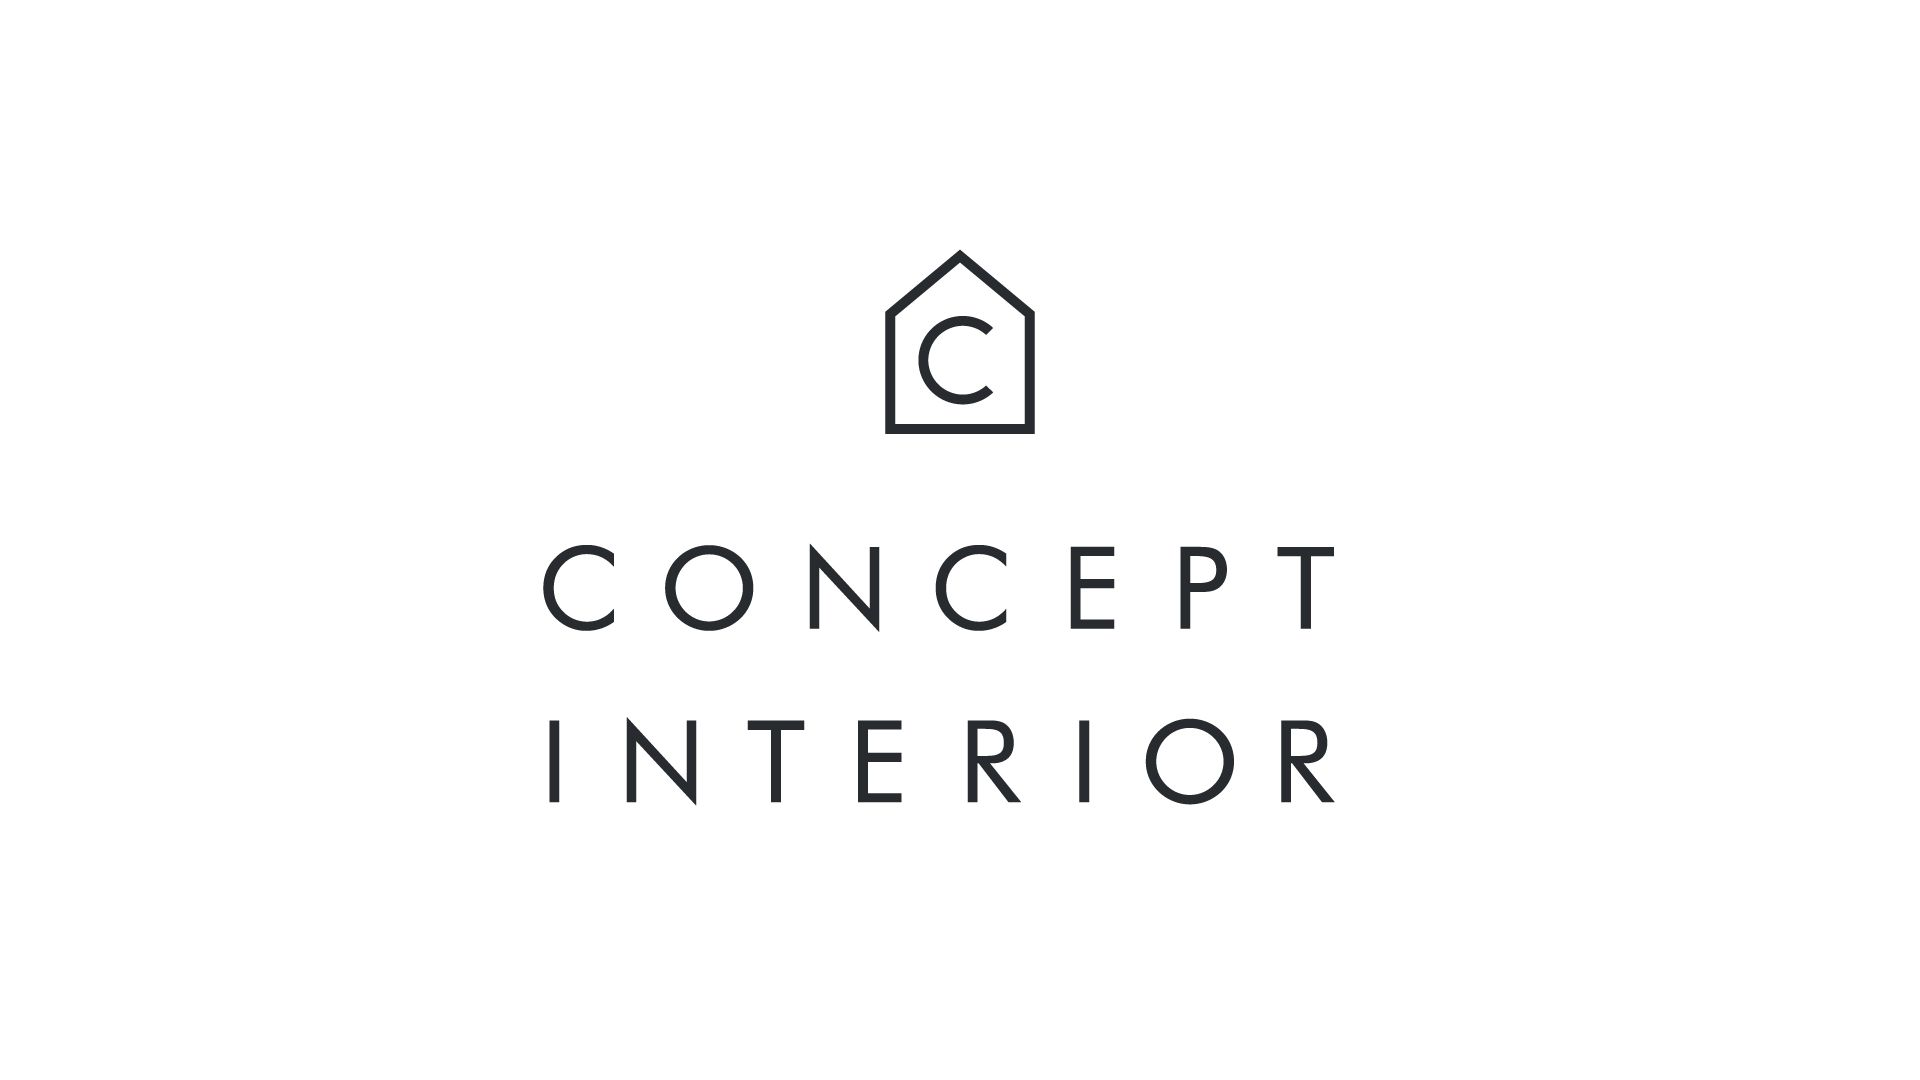 Interior design company logos home design ideas for Interior design company name ideas